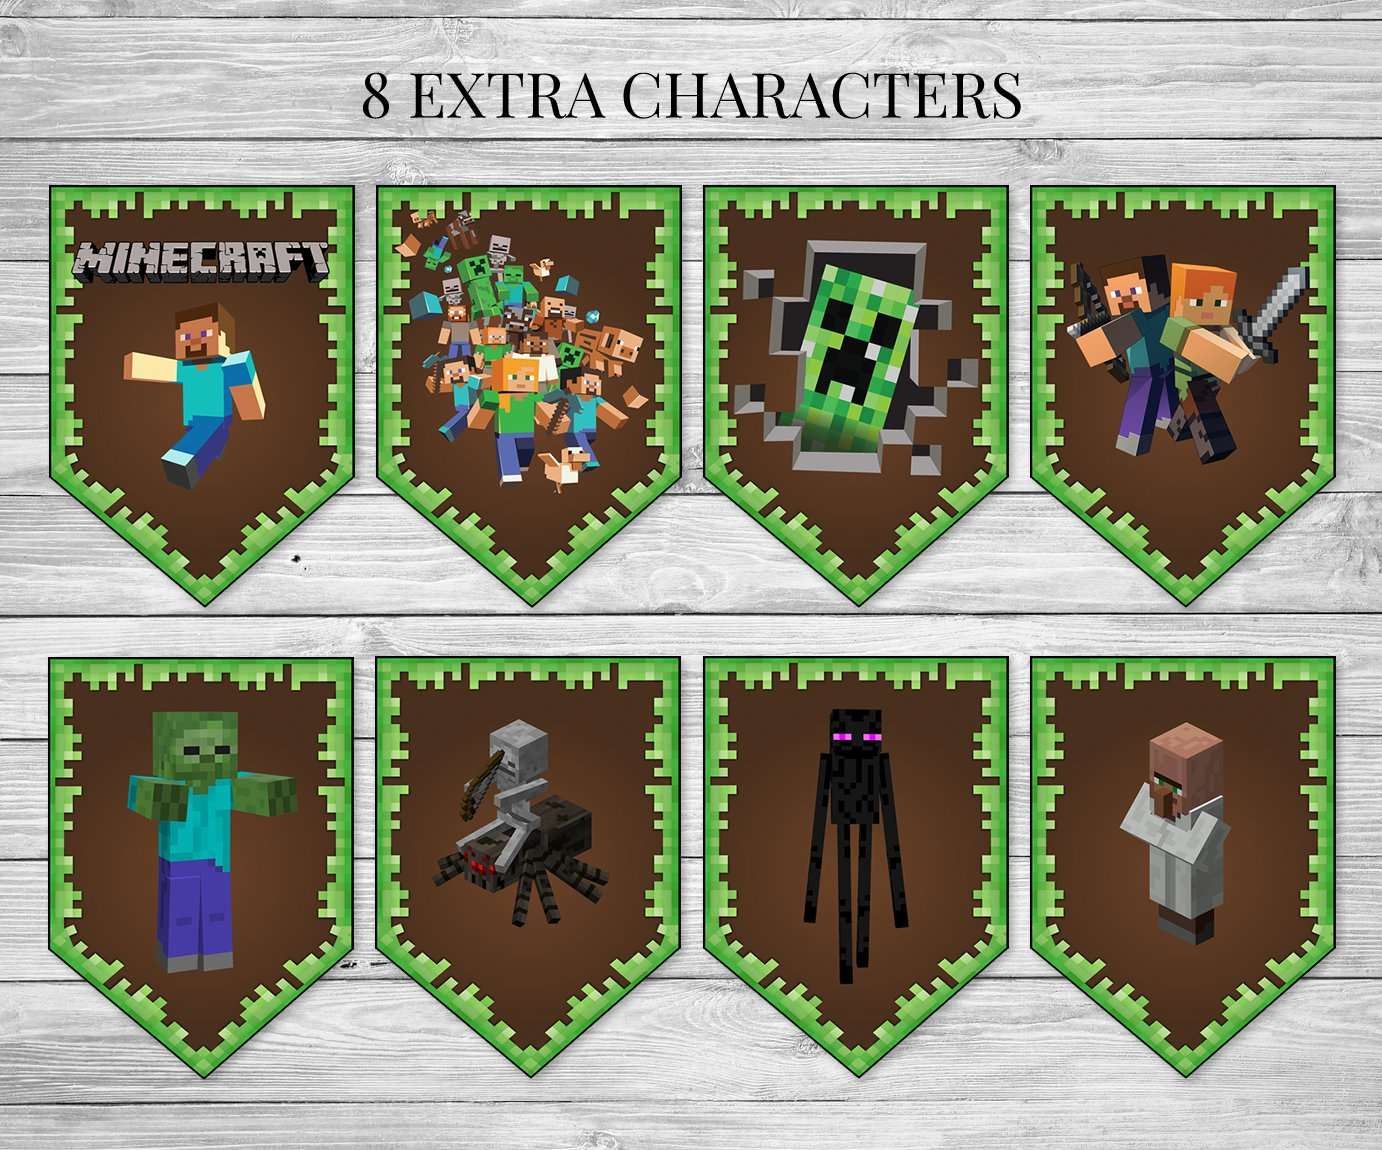 photograph regarding Minecraft Birthday Banner Free Printable called Minecraft Banner No cost Printable - Researching Mars